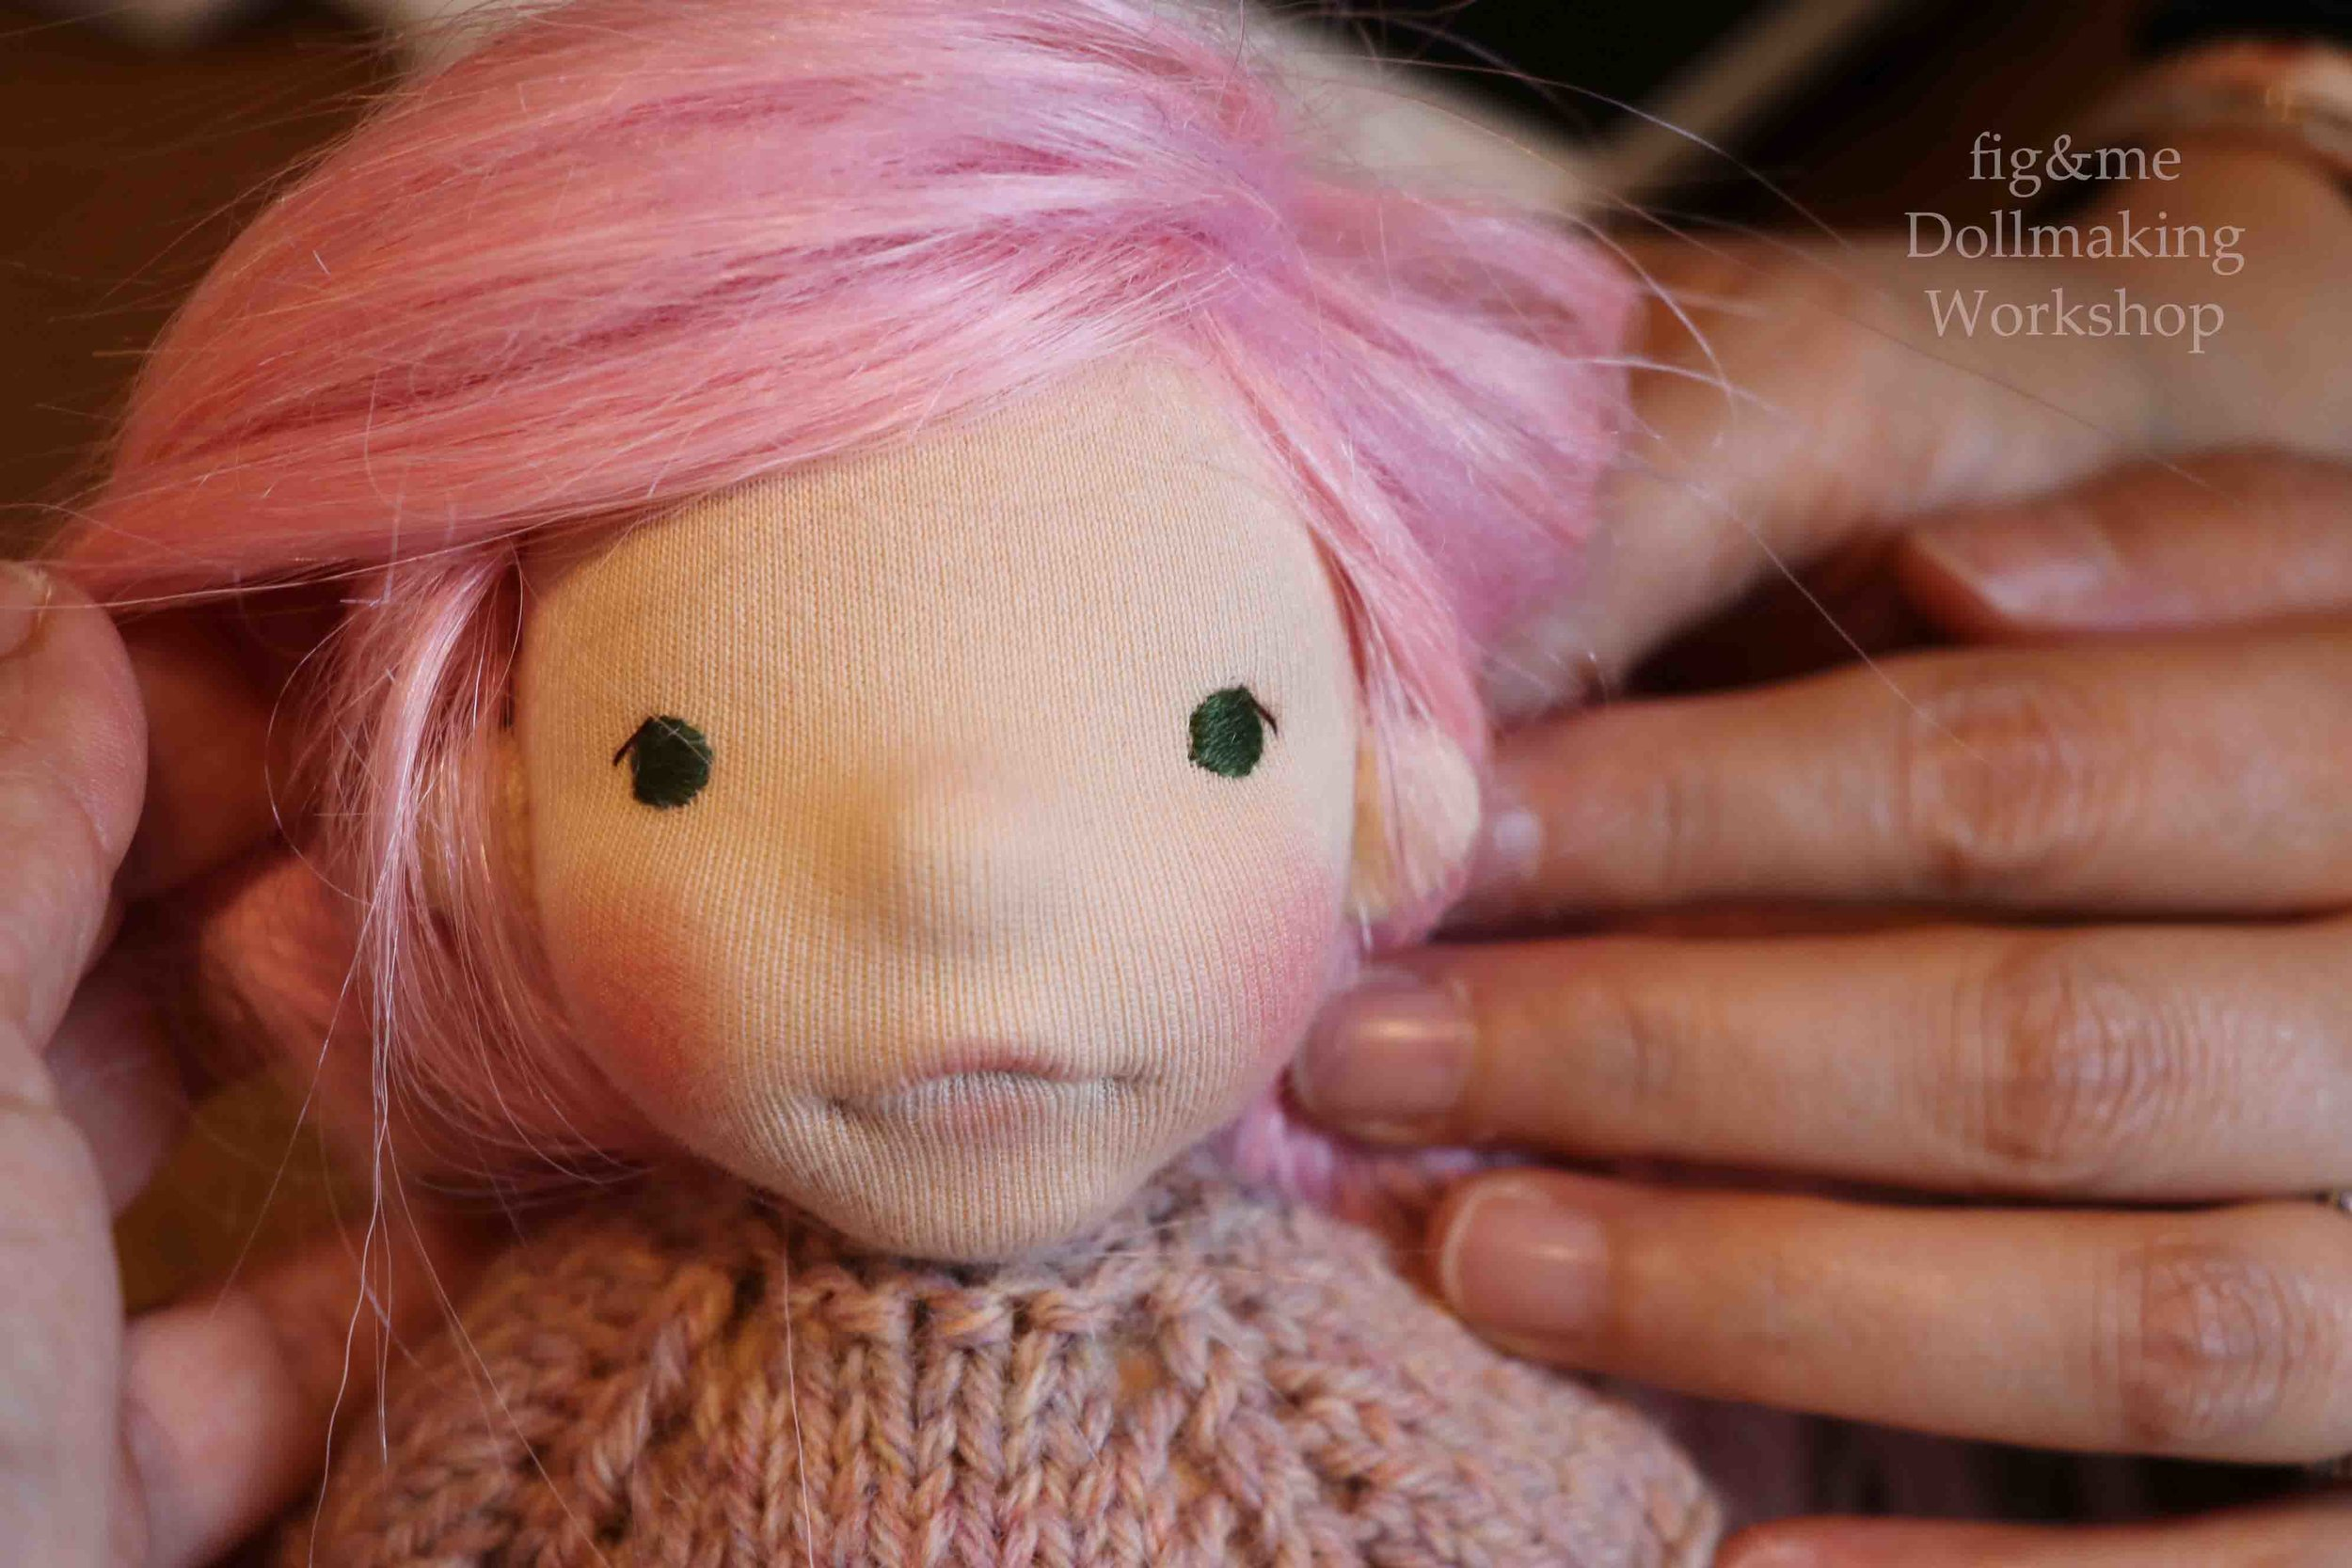 Her name is Peonia. What a beauty! Fig and me doll workshop.